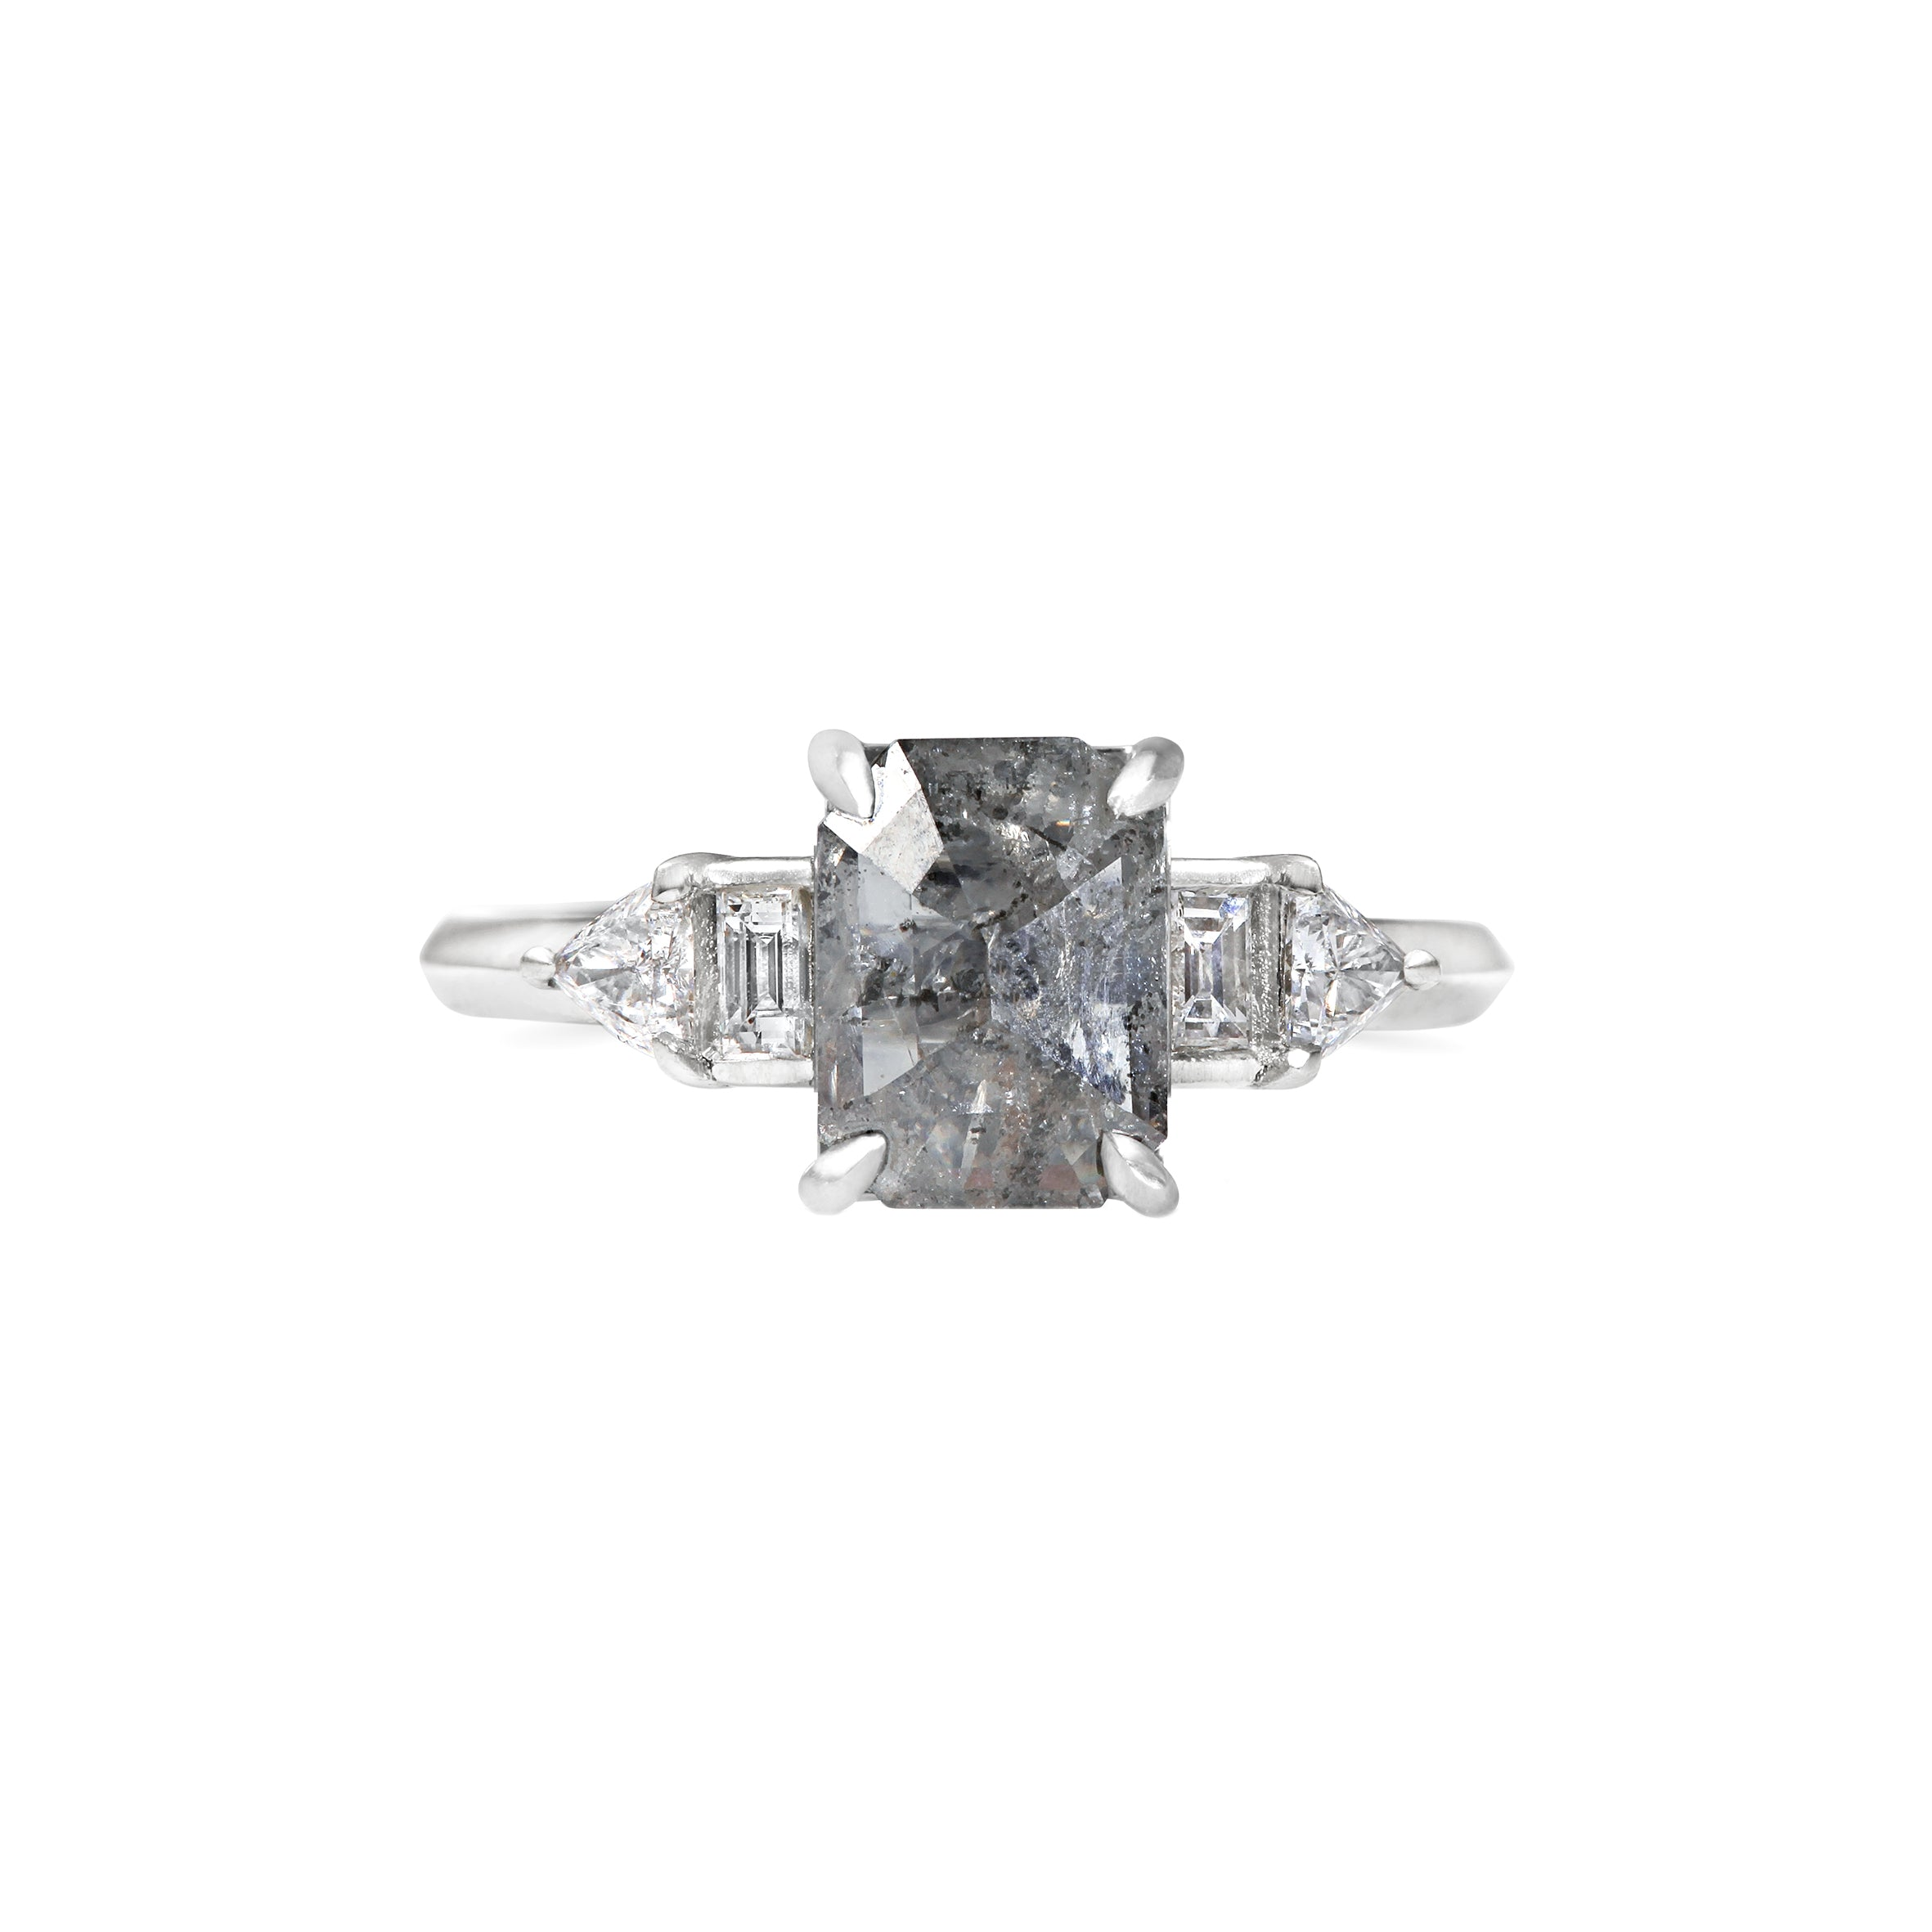 Grey Emerald cut Art Deco Engagement Ring